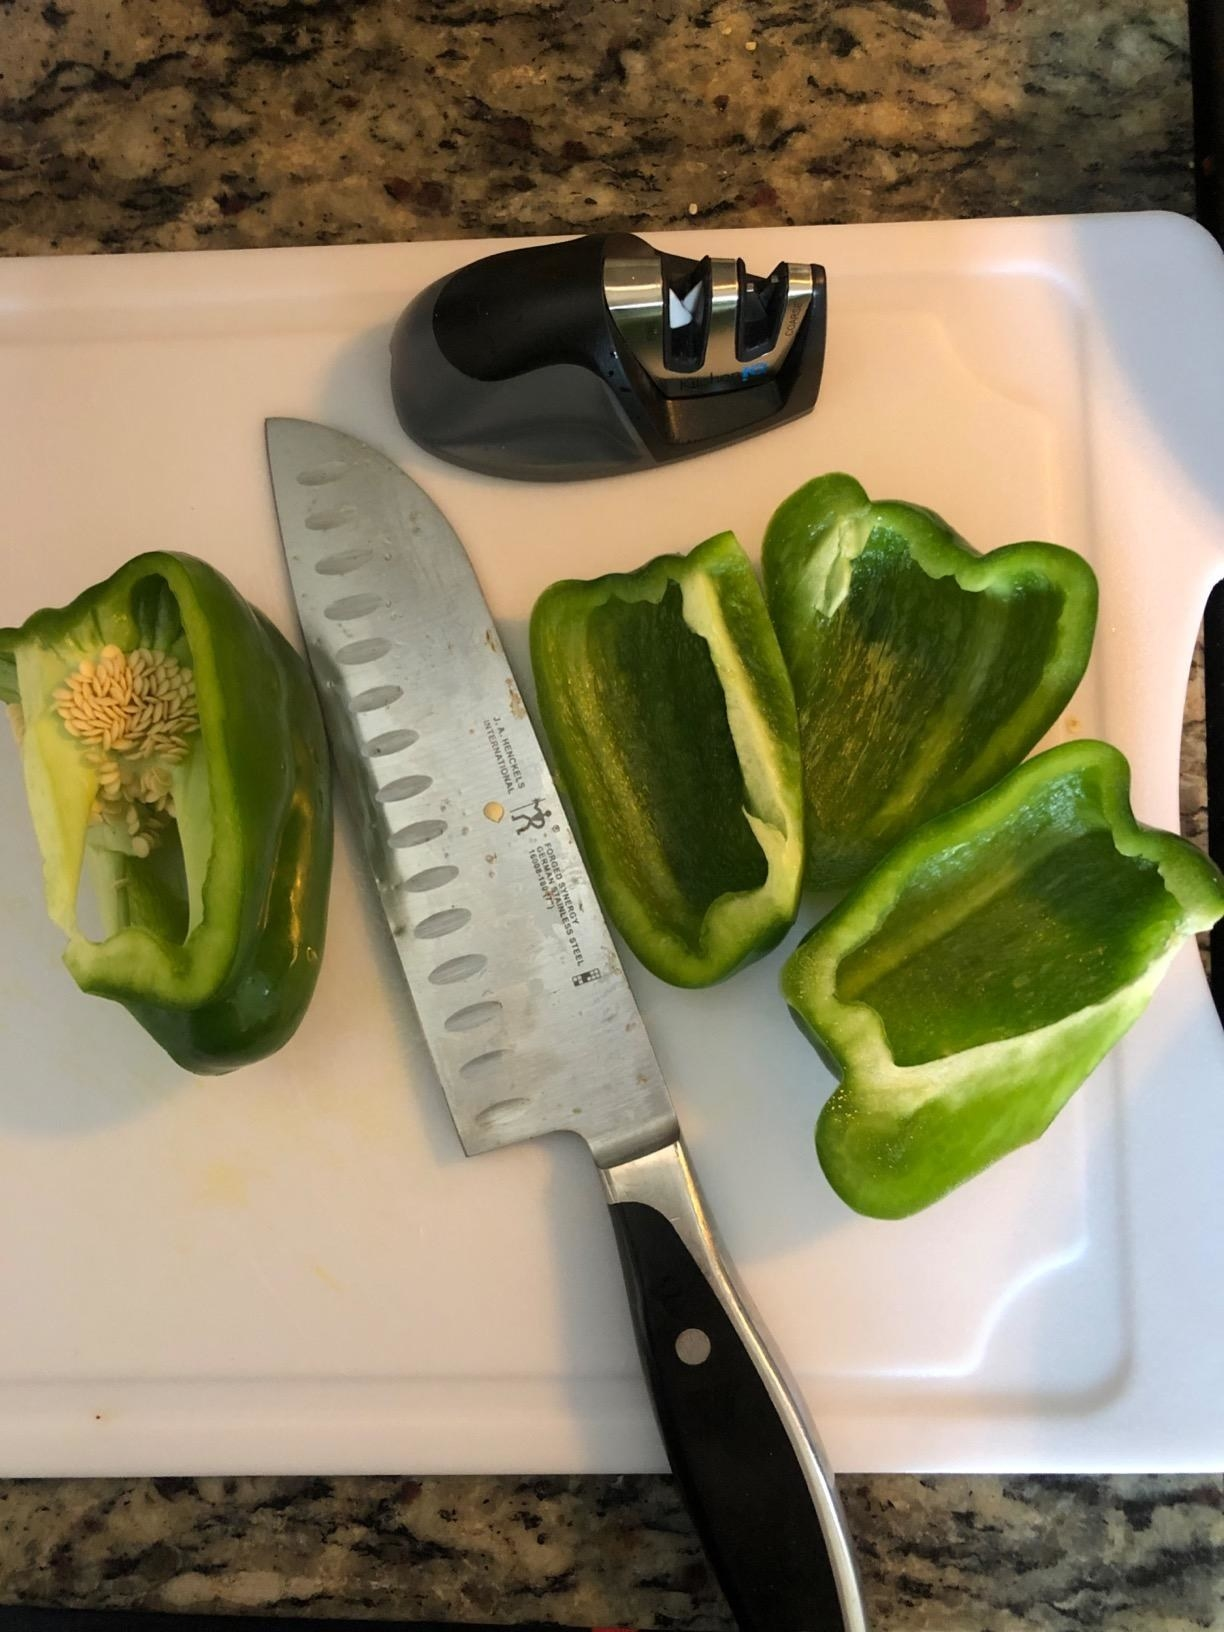 A reviewer photo of a knife next to sliced green peppers and the knife sharpener